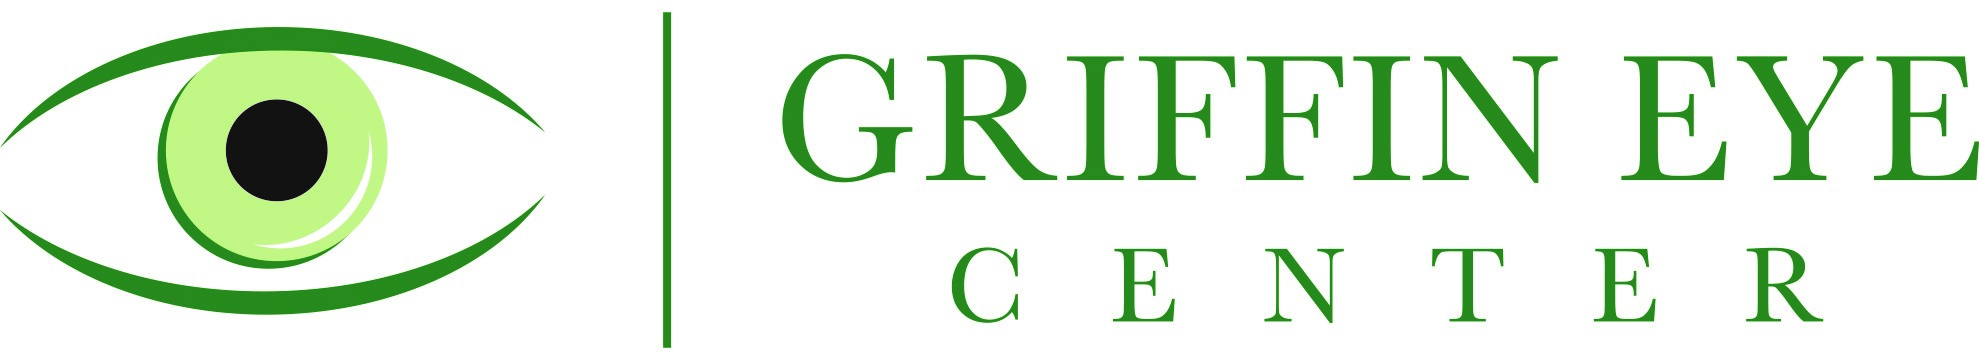 Griffin Eye Logo.jpg